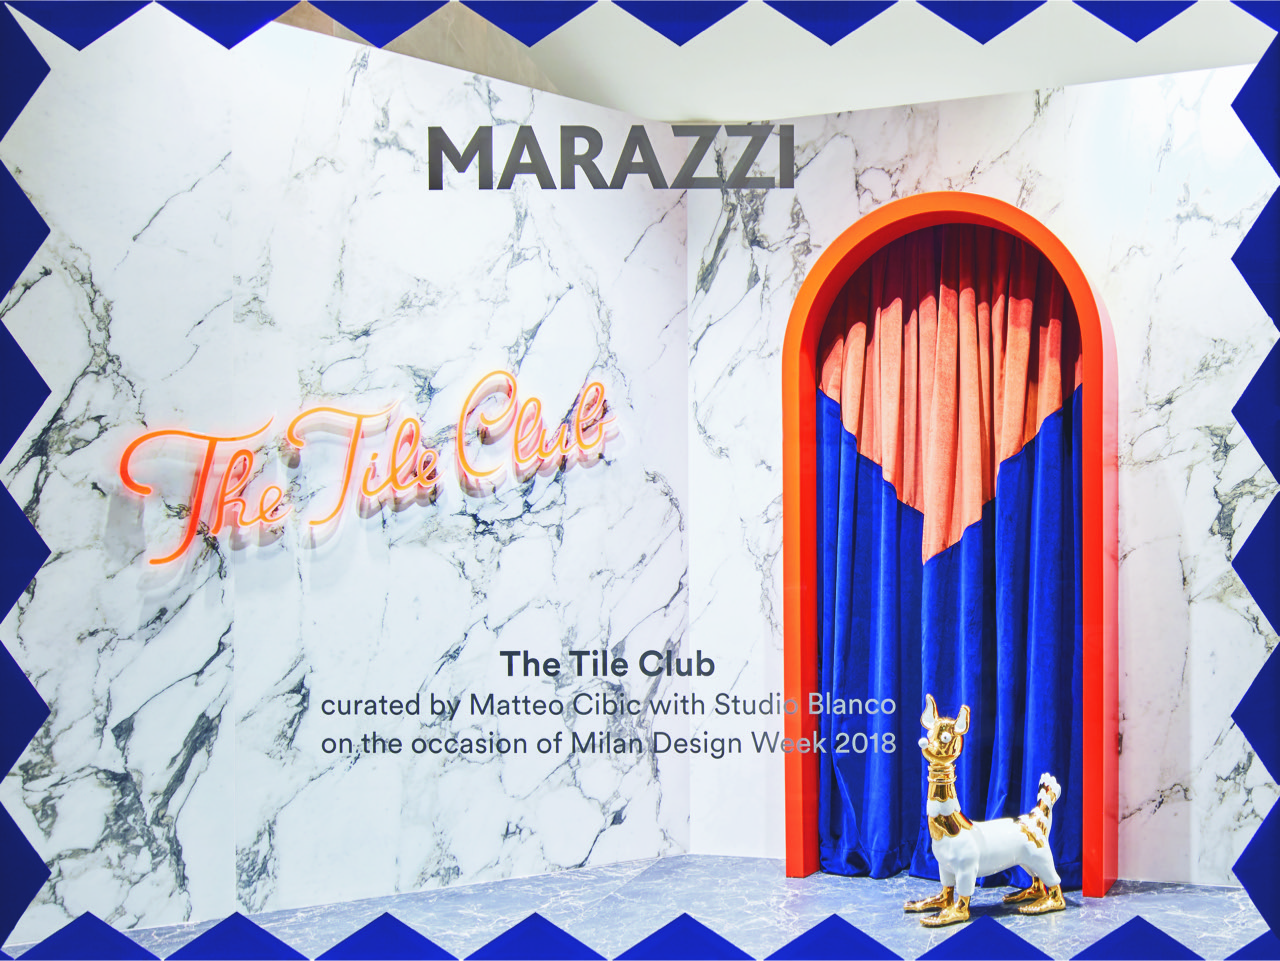 Marazzi_The+Tile+Club_ph+Omar+Sartor_7-1.jpeg